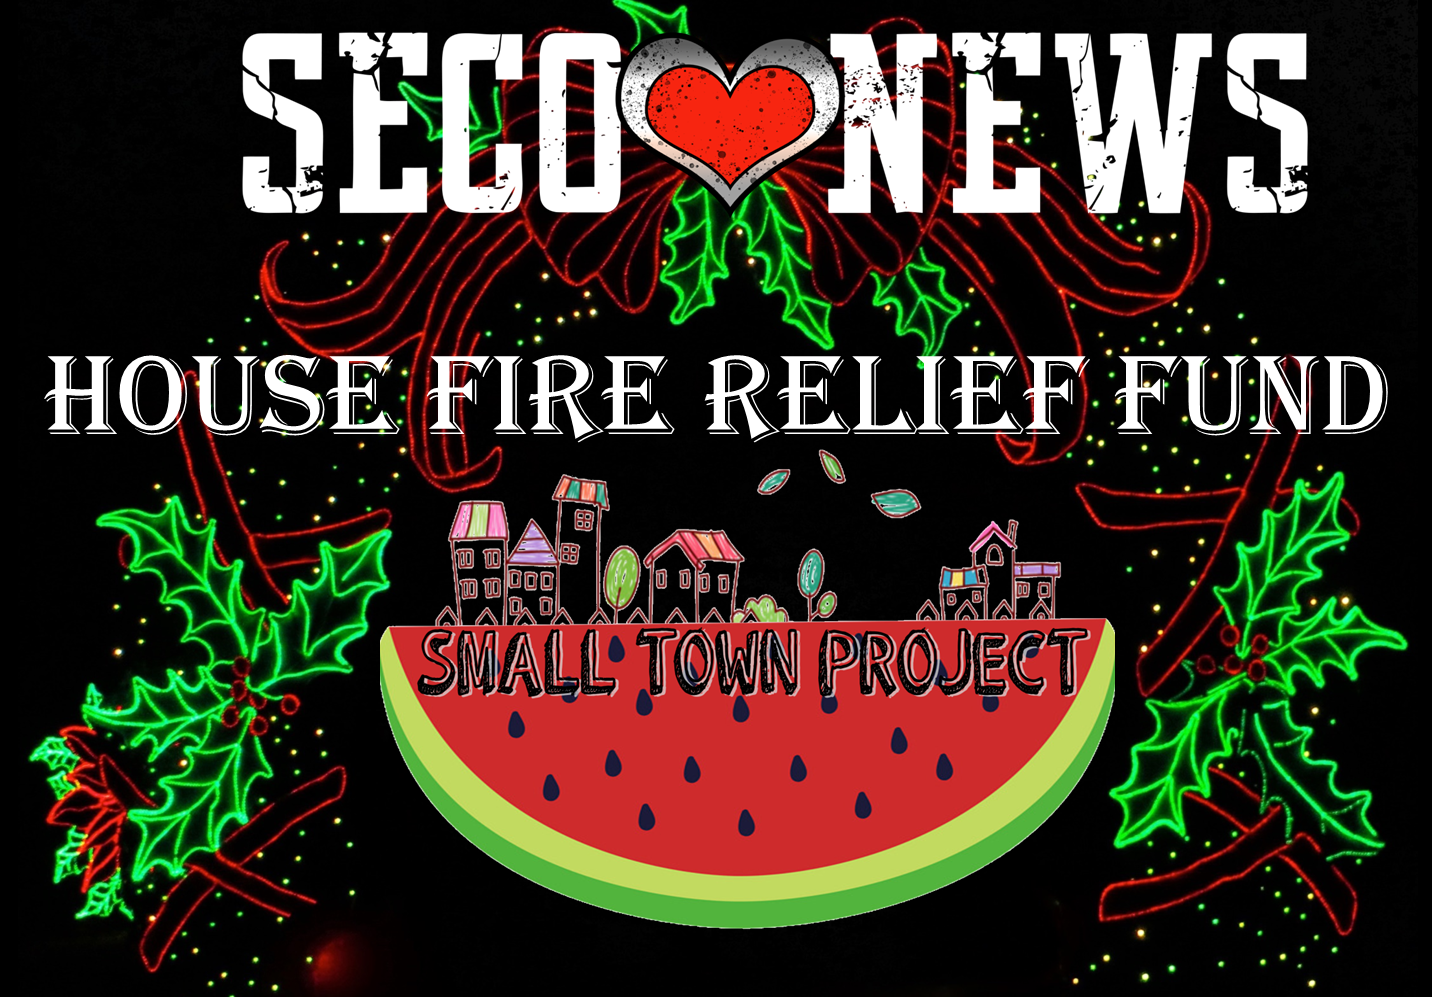 Small Town Project Fire Relief Fund SECO News seconews.org